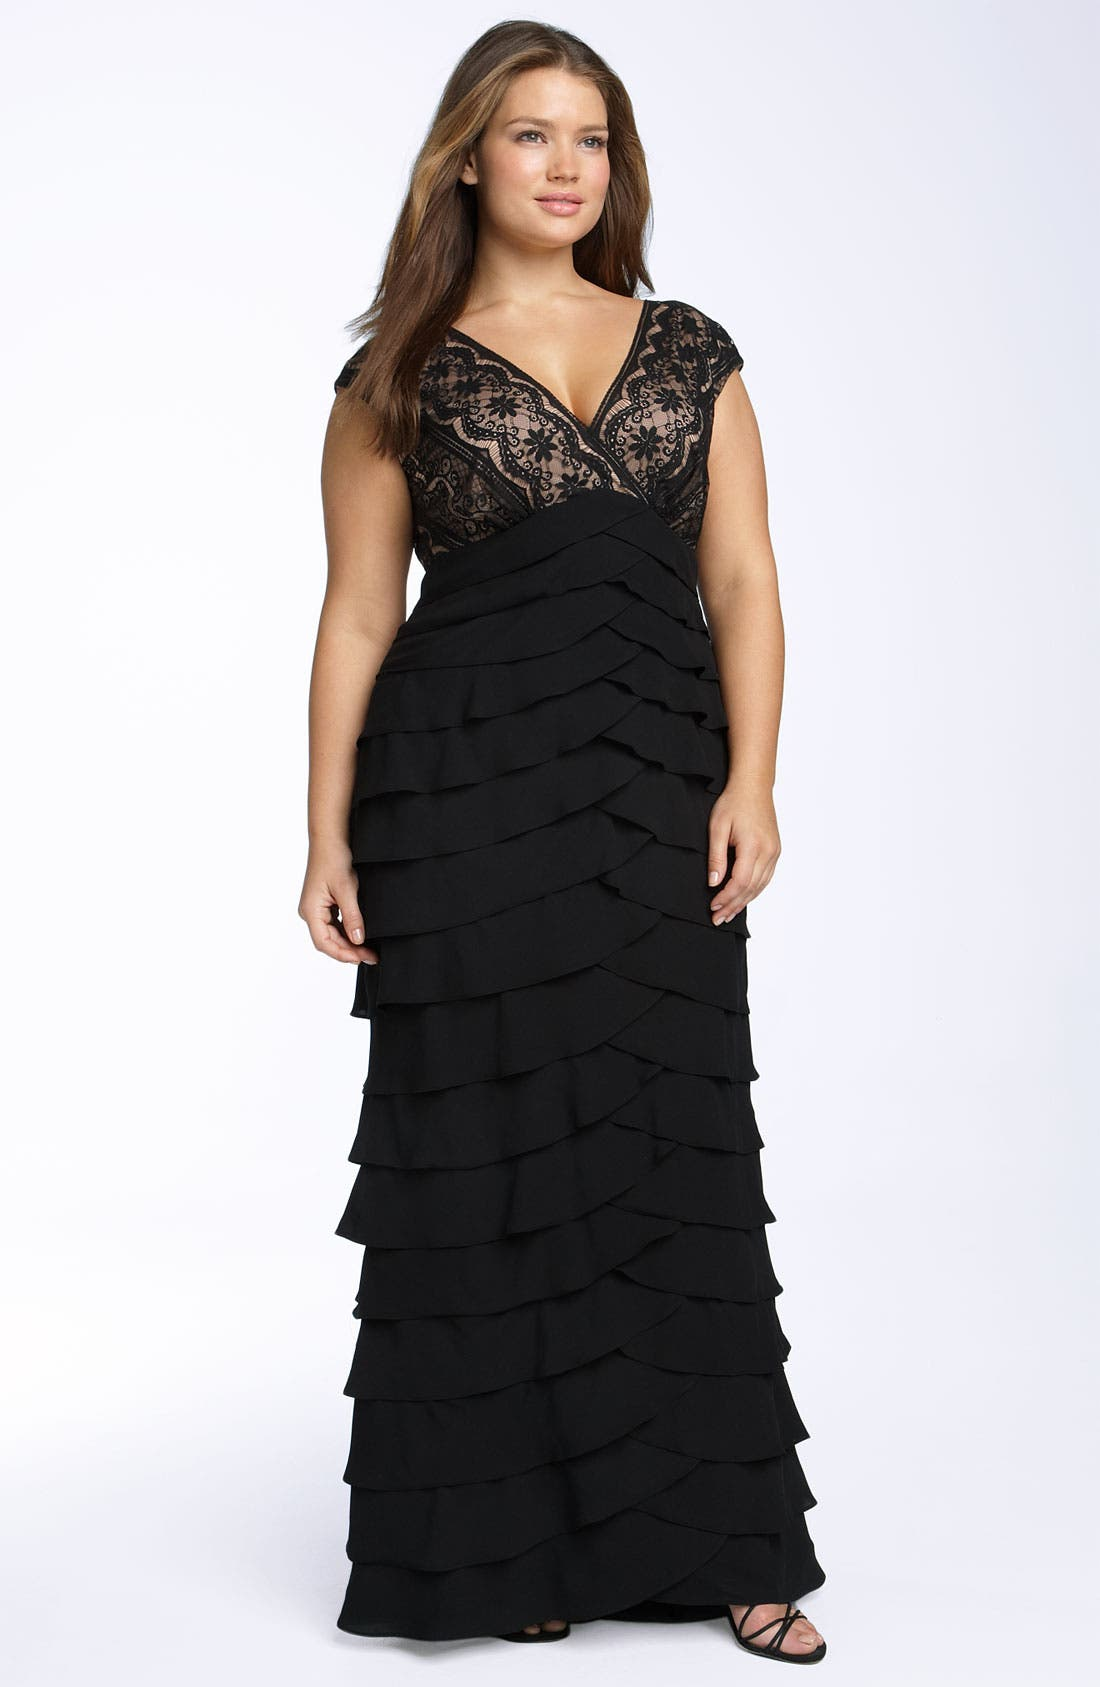 Alternate Image 1 Selected - Adrianna Papell Lace & Shutter Pleat Gown (Plus Size)